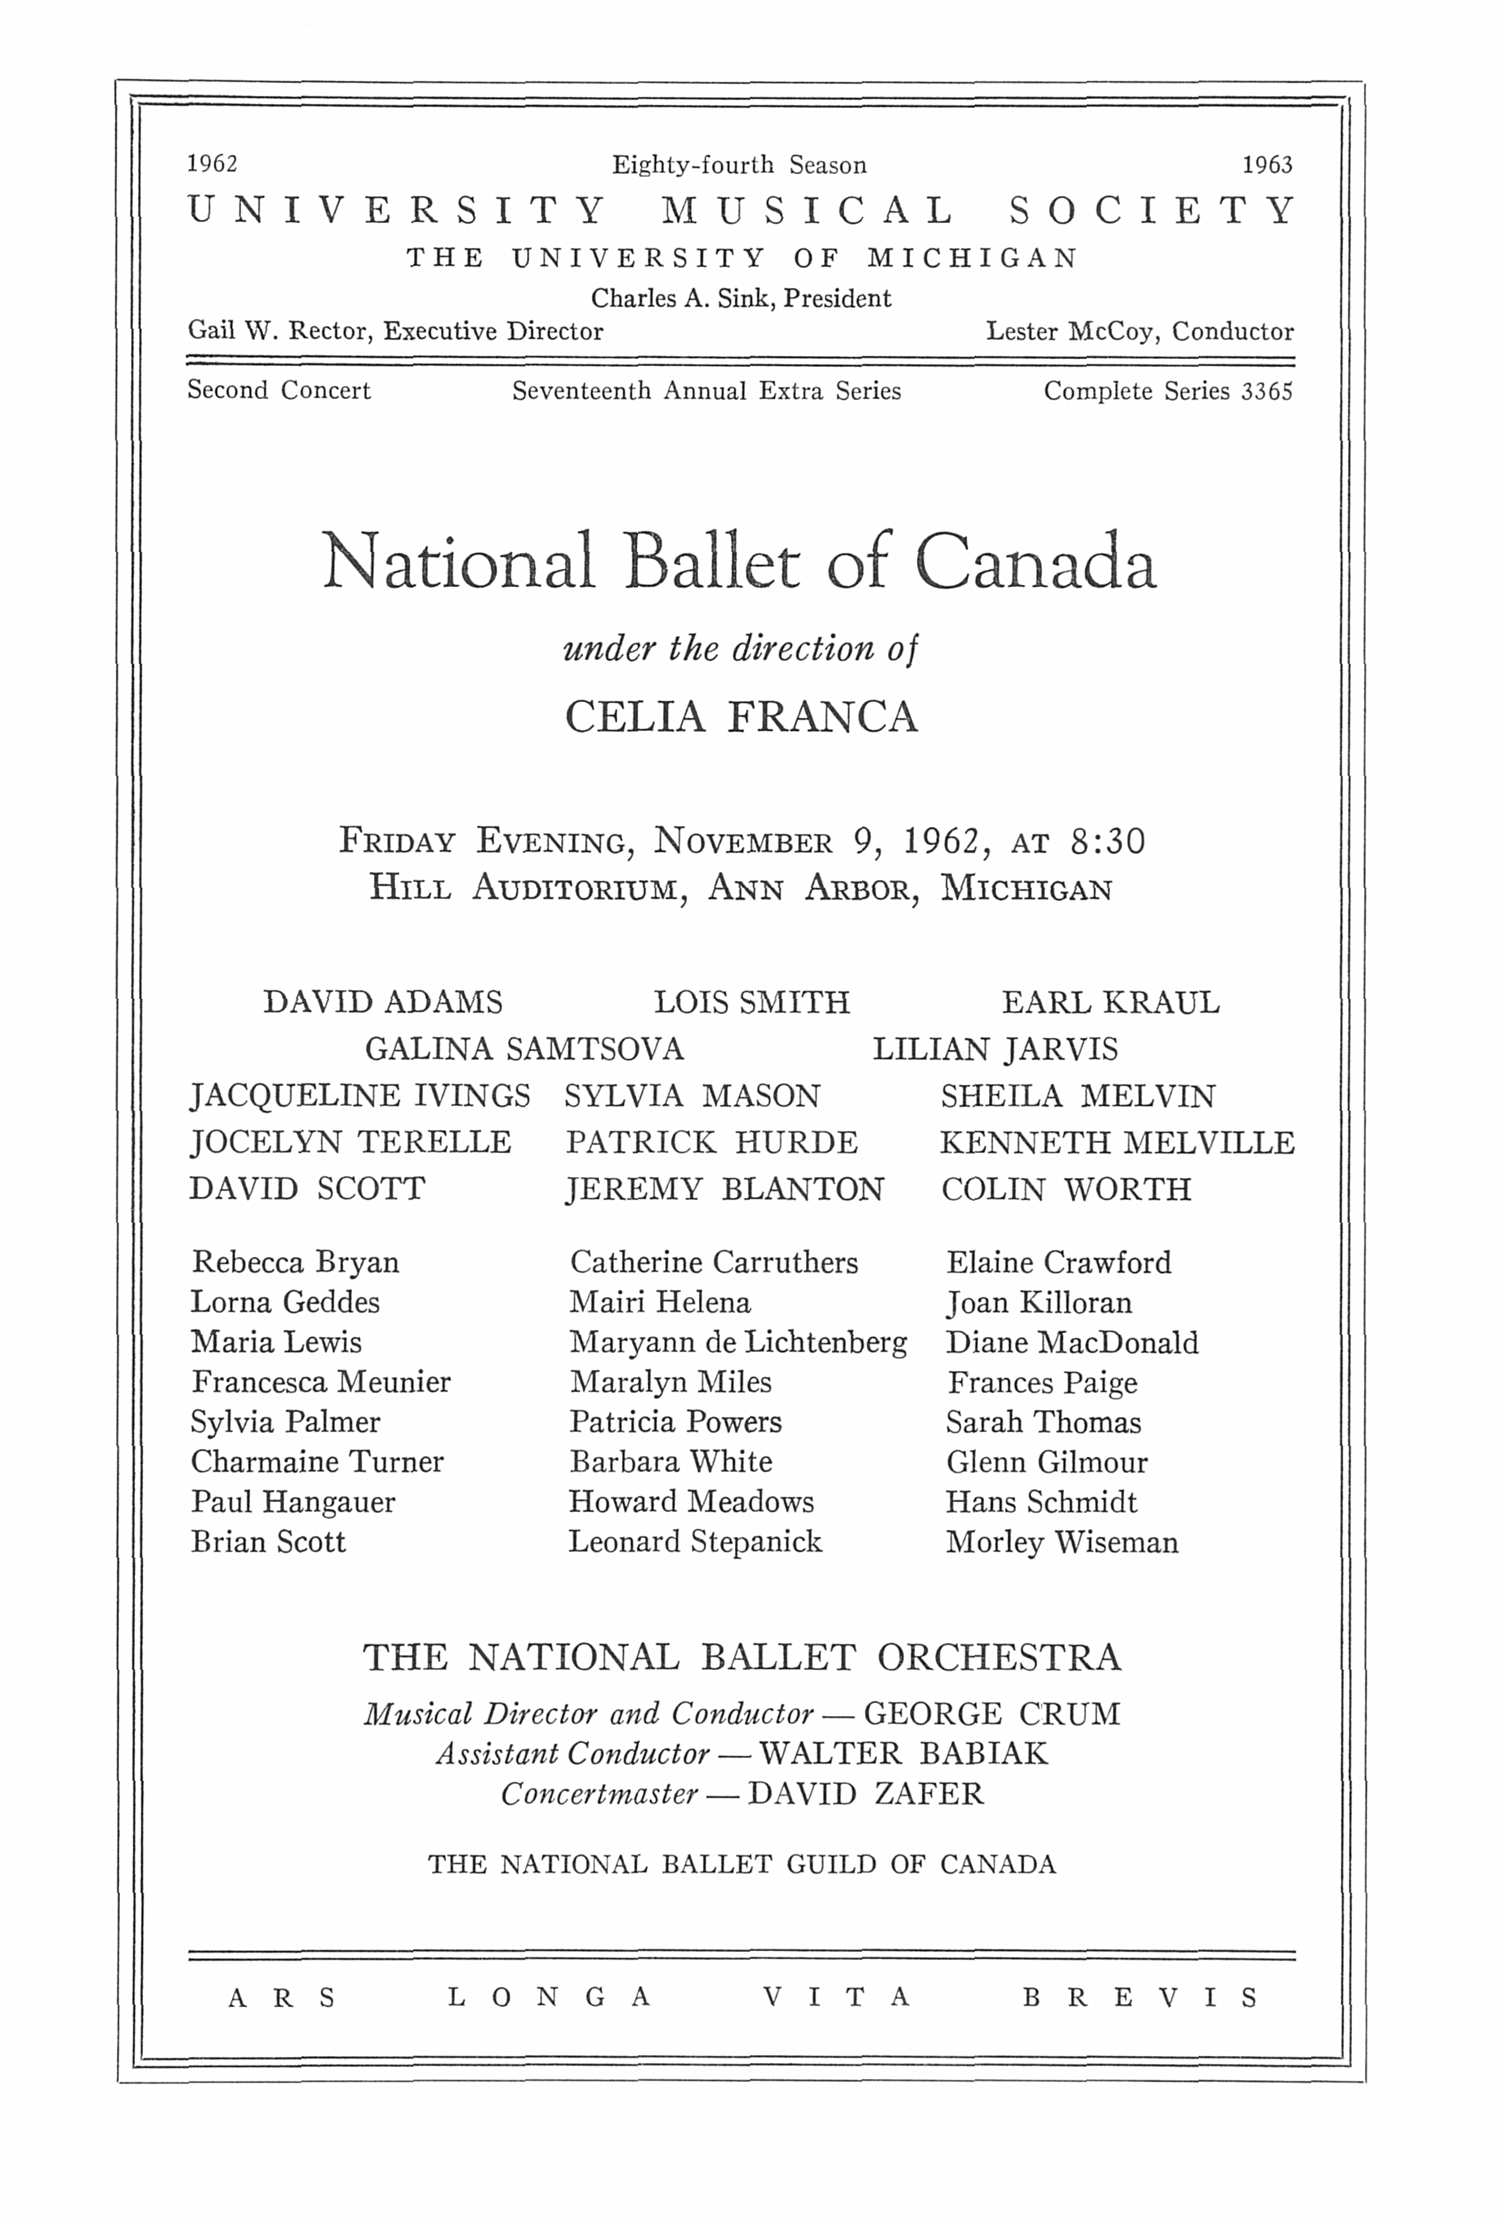 UMS Concert Program, November 9, 1962: National Ballet Of Canada -- Celia Franca image